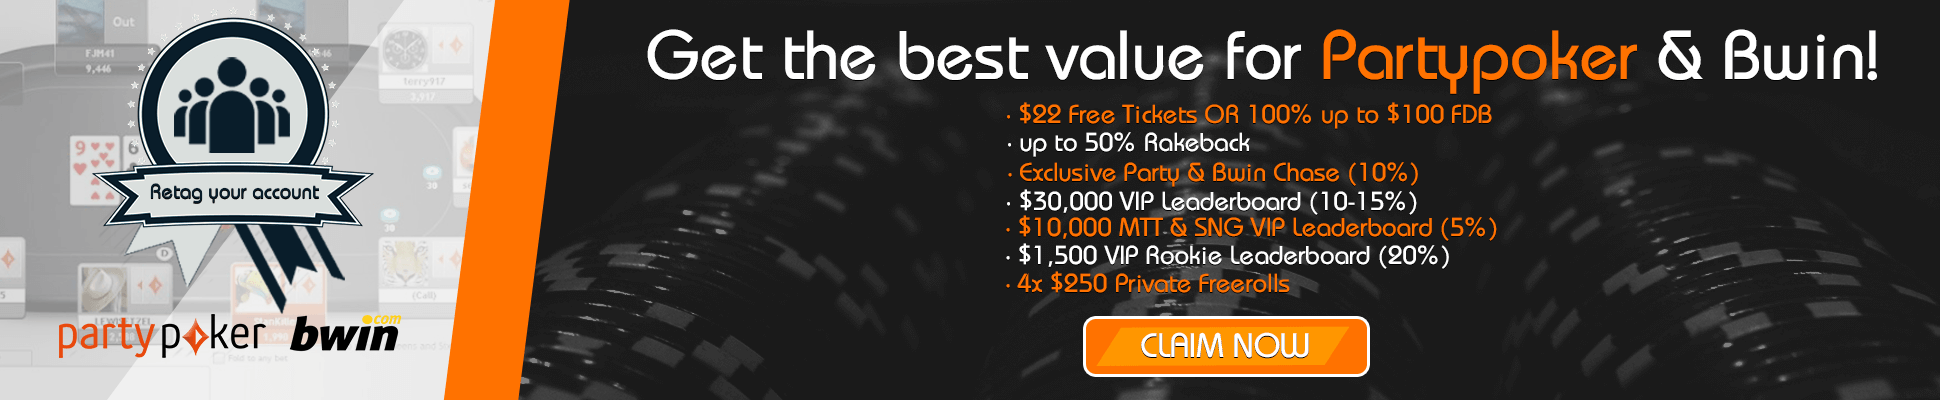 partypoker-new-banners-slider-version-1-Final